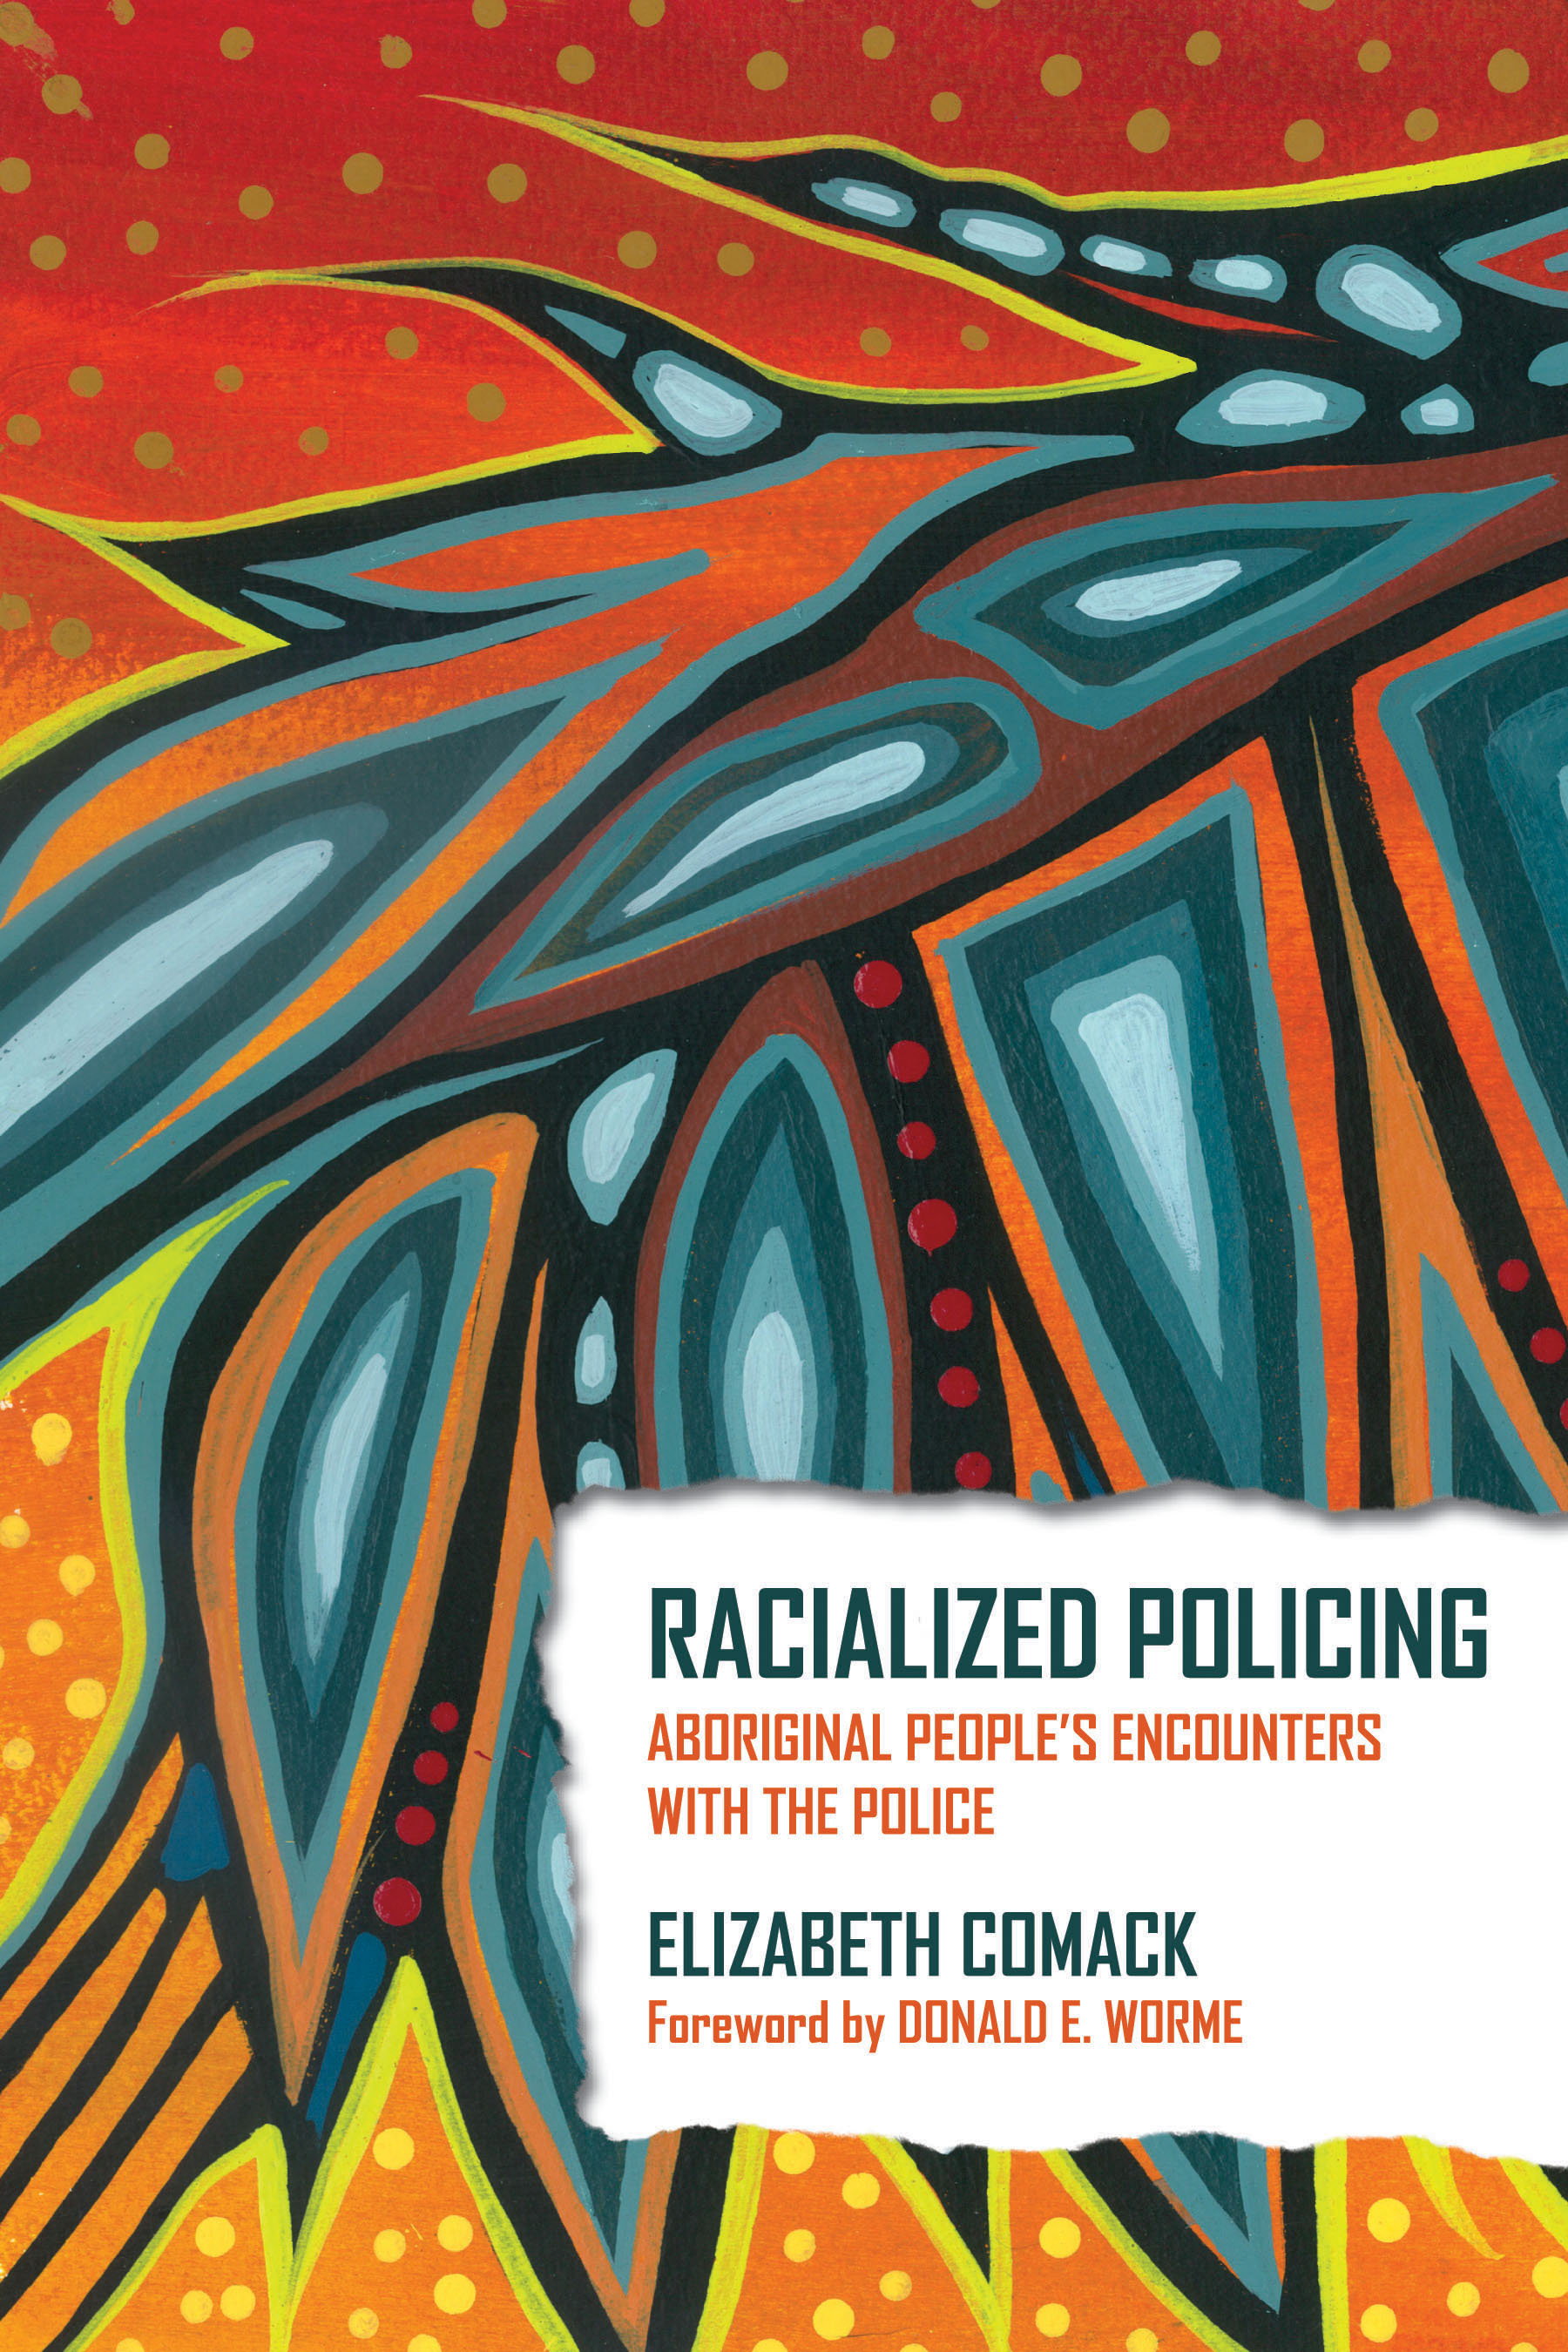 Racialized Policing